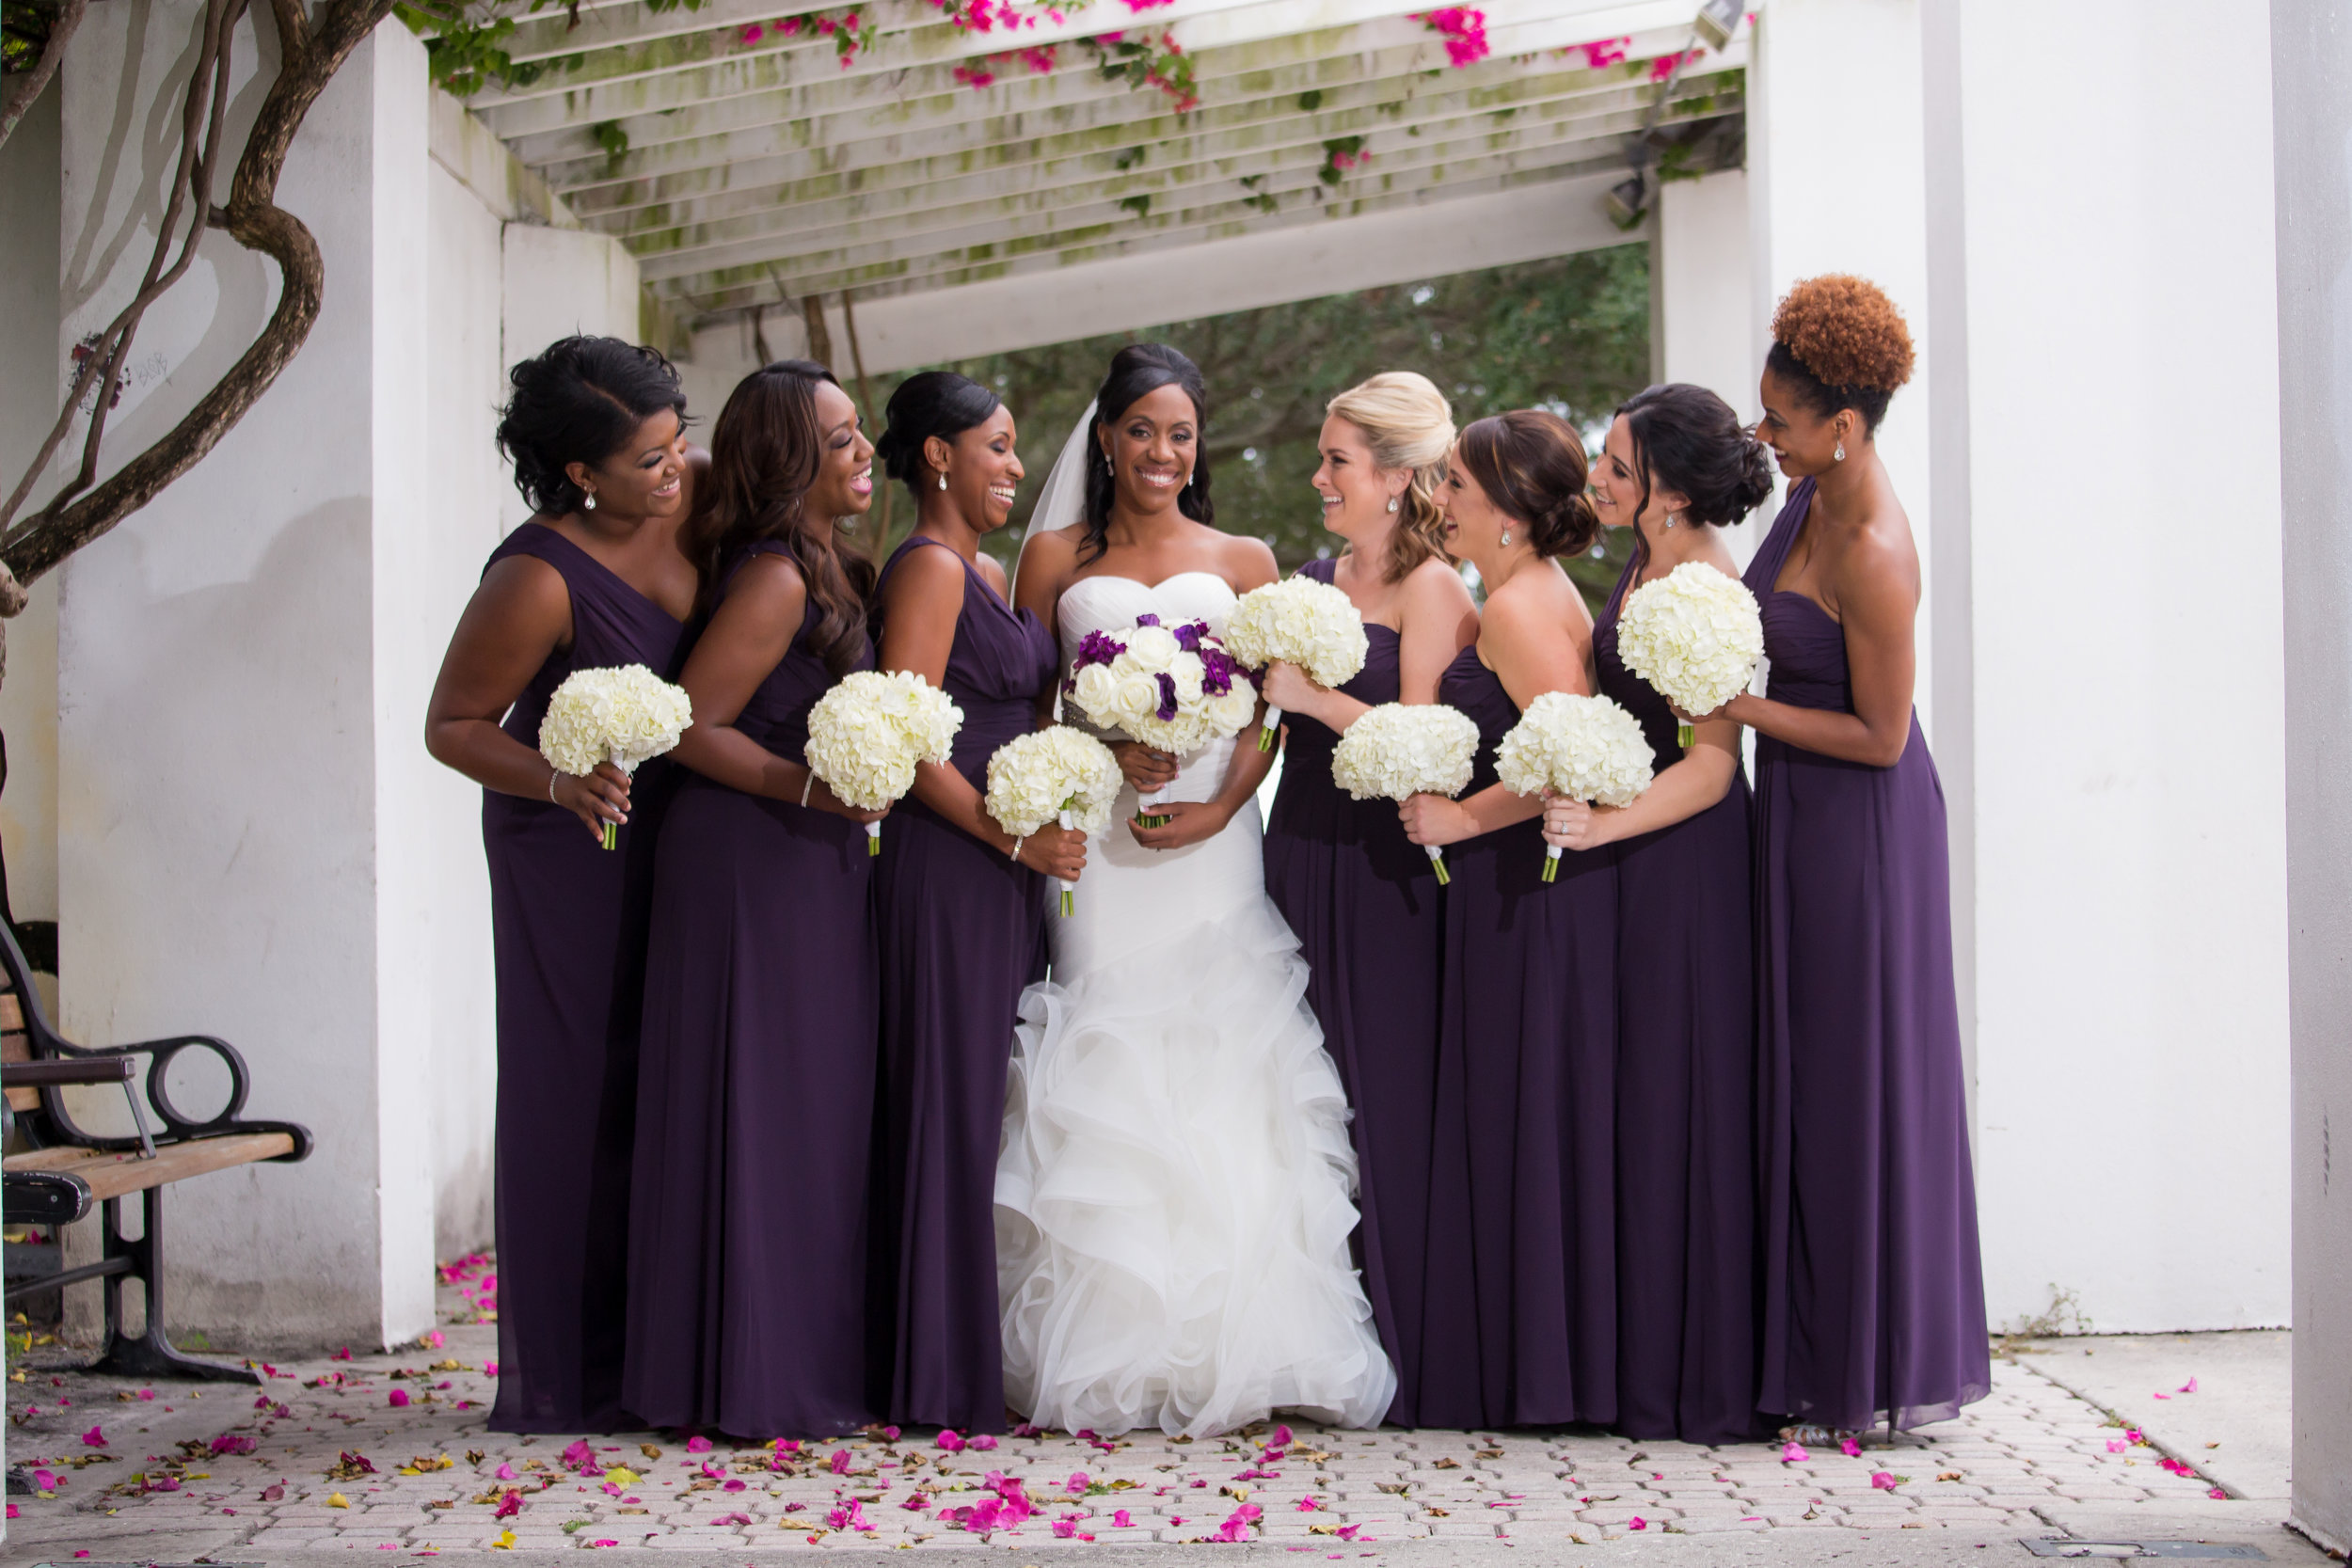 The bride looked stunning in her mermaid gown with rhinestone belt, flanked by her friends and bridesmaids in chic eggplant dresses.